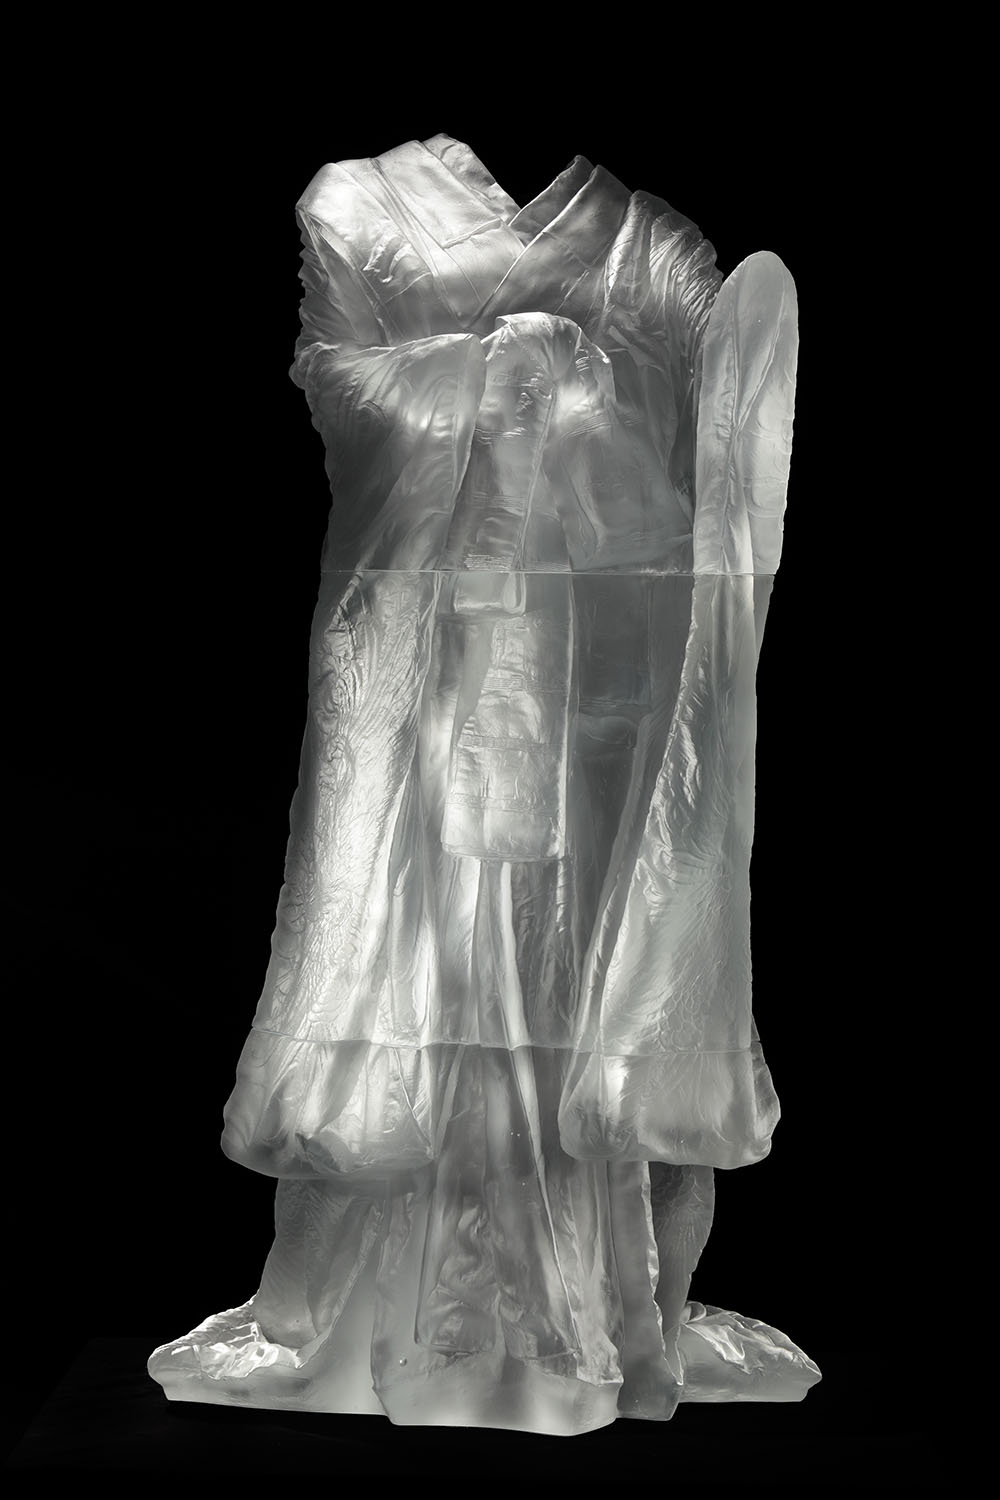 Kabuki,  2014, AP, cast glass, 59 2/3 x 31 2/3 x 21 inches. Now on view at Gerald Peters Projects, Santa Fe.